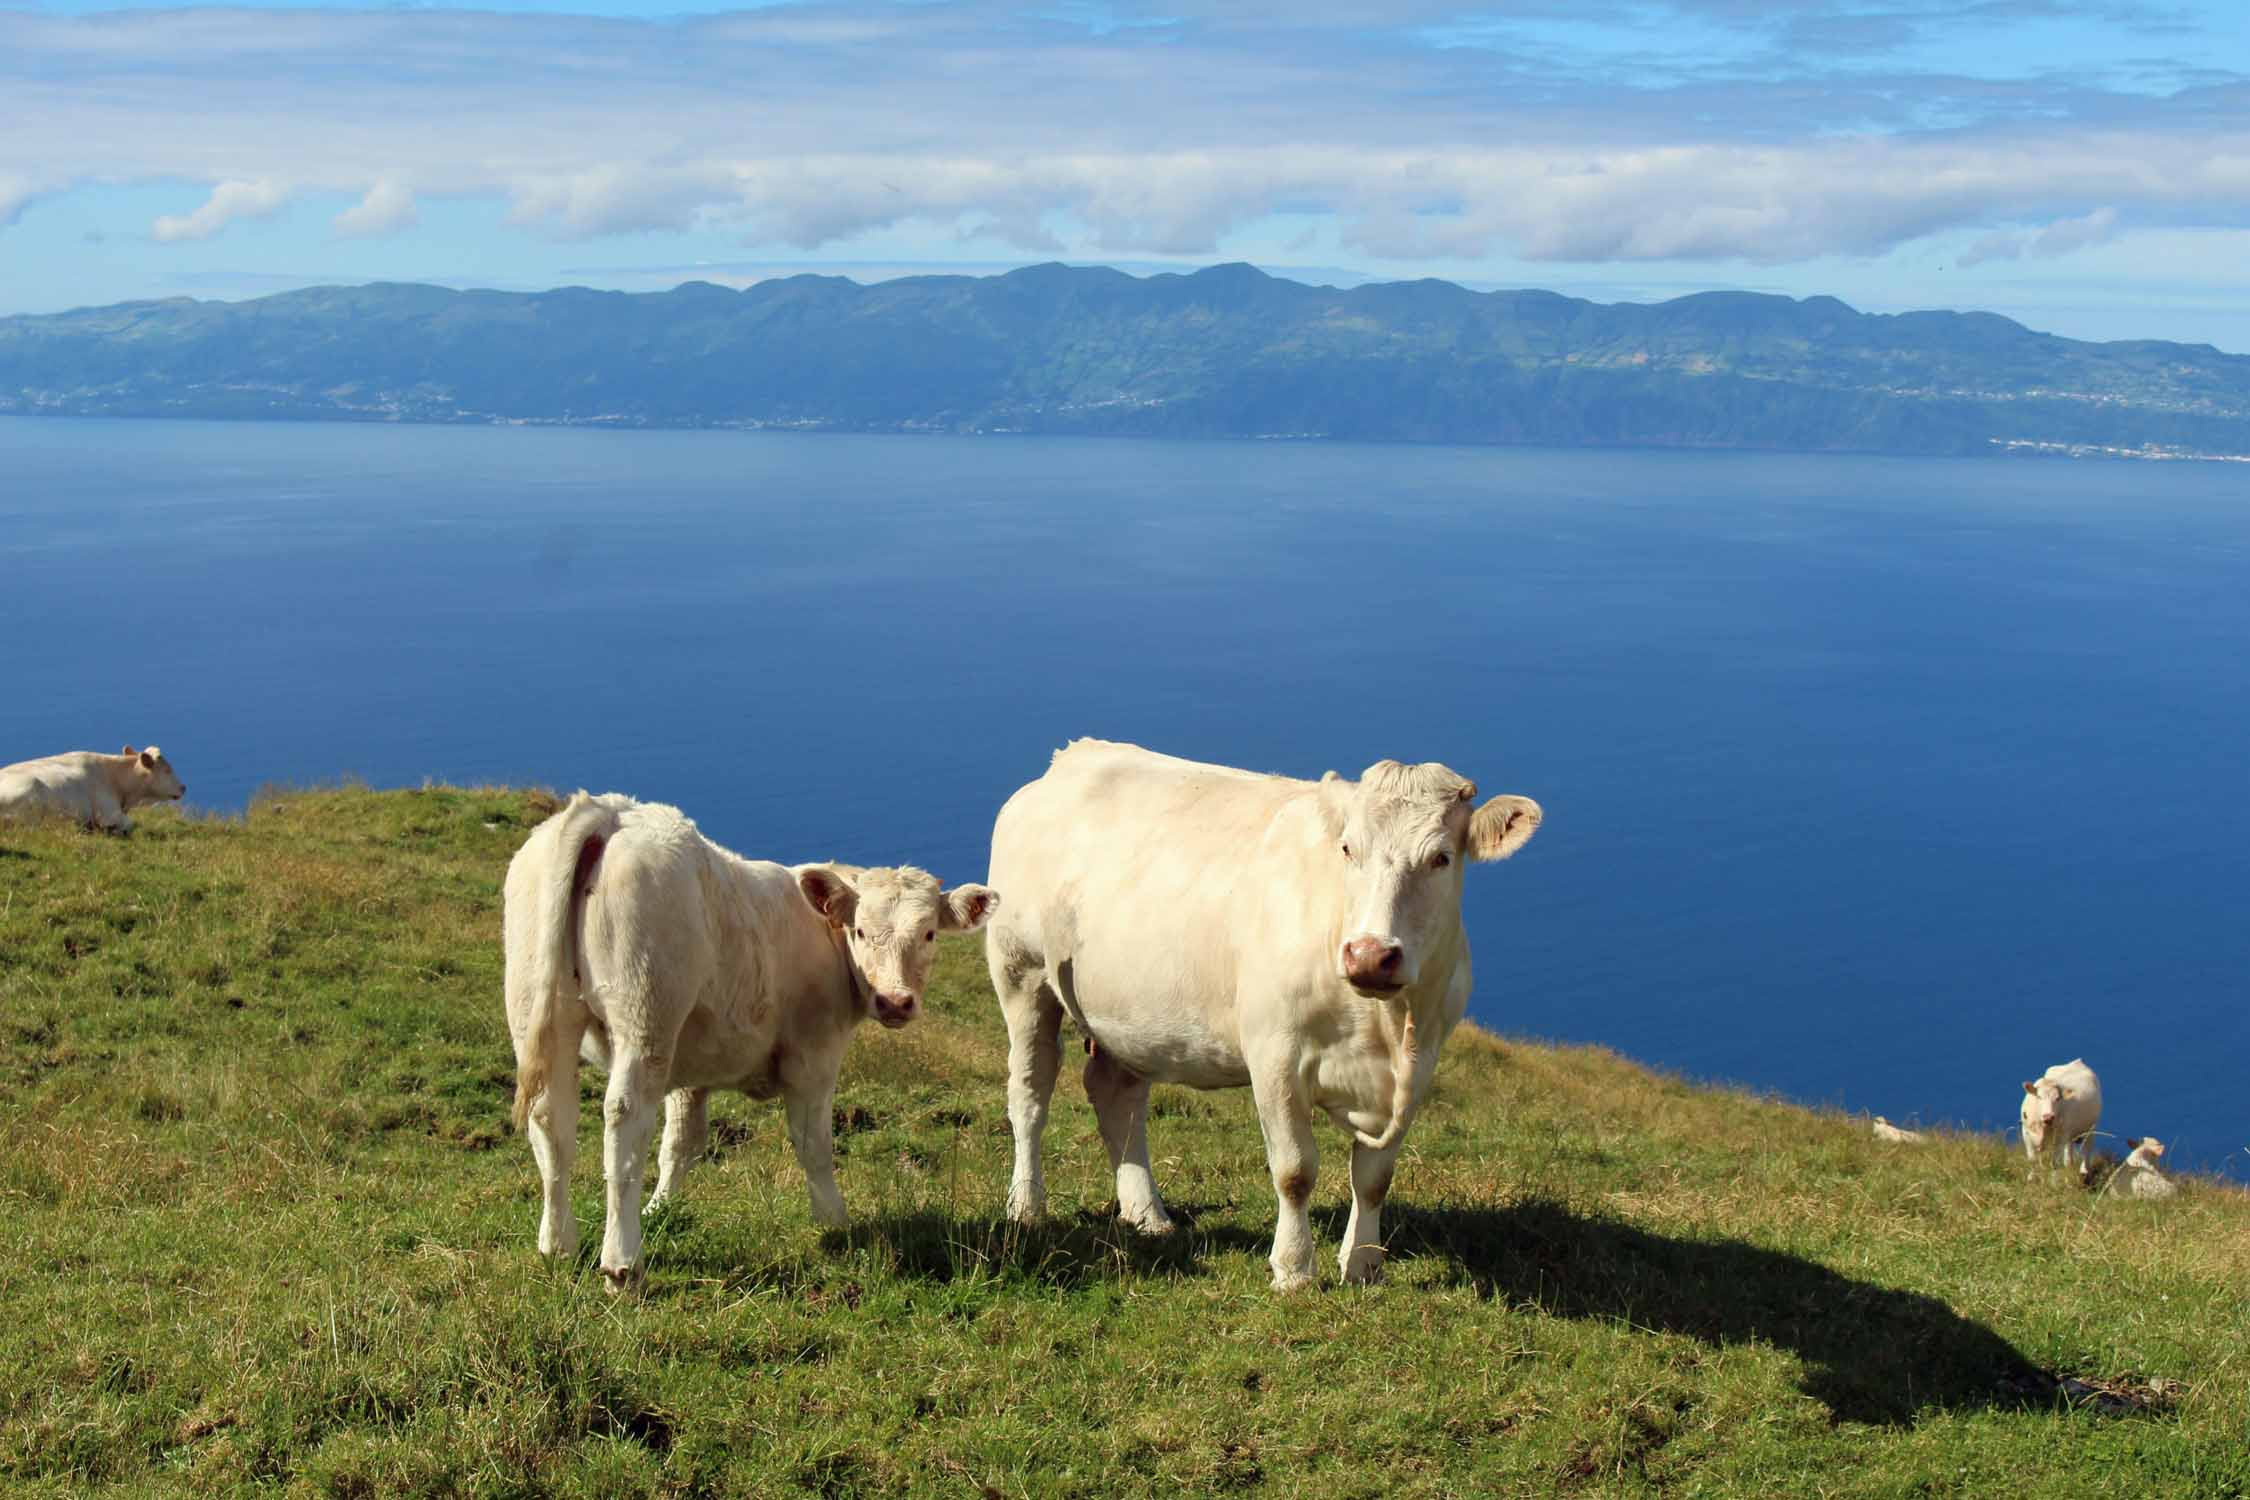 Cows on Pico Island, Azores